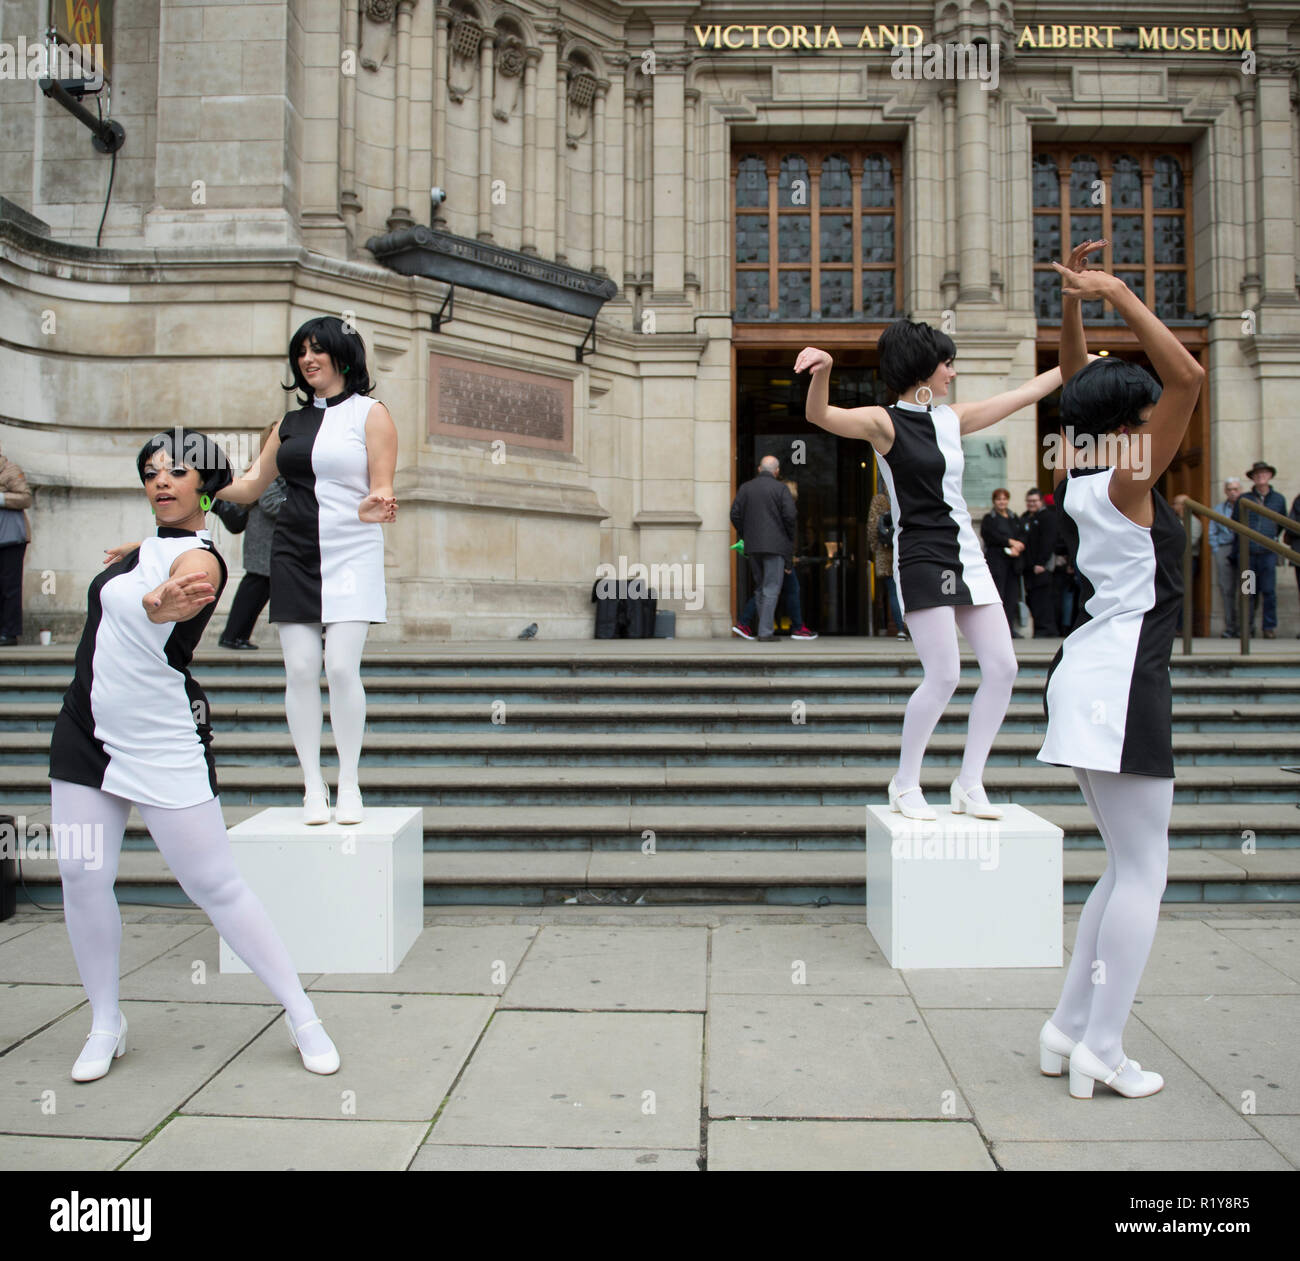 V&A, London, UK. 15 November, 2018. Models from the 1960s and 70s that worked with Mary Quant will gather alongside contemporary models to form a Quant revival. Meyer Dancers give a 60s Go-Go dance performance at the V&A entrance. The event marks the first time the public are able to purchase tickets for the Mary Quant exhibition opening at the V&A in 6 April 2019. Credit: Malcolm Park/Alamy Live News. - Stock Image